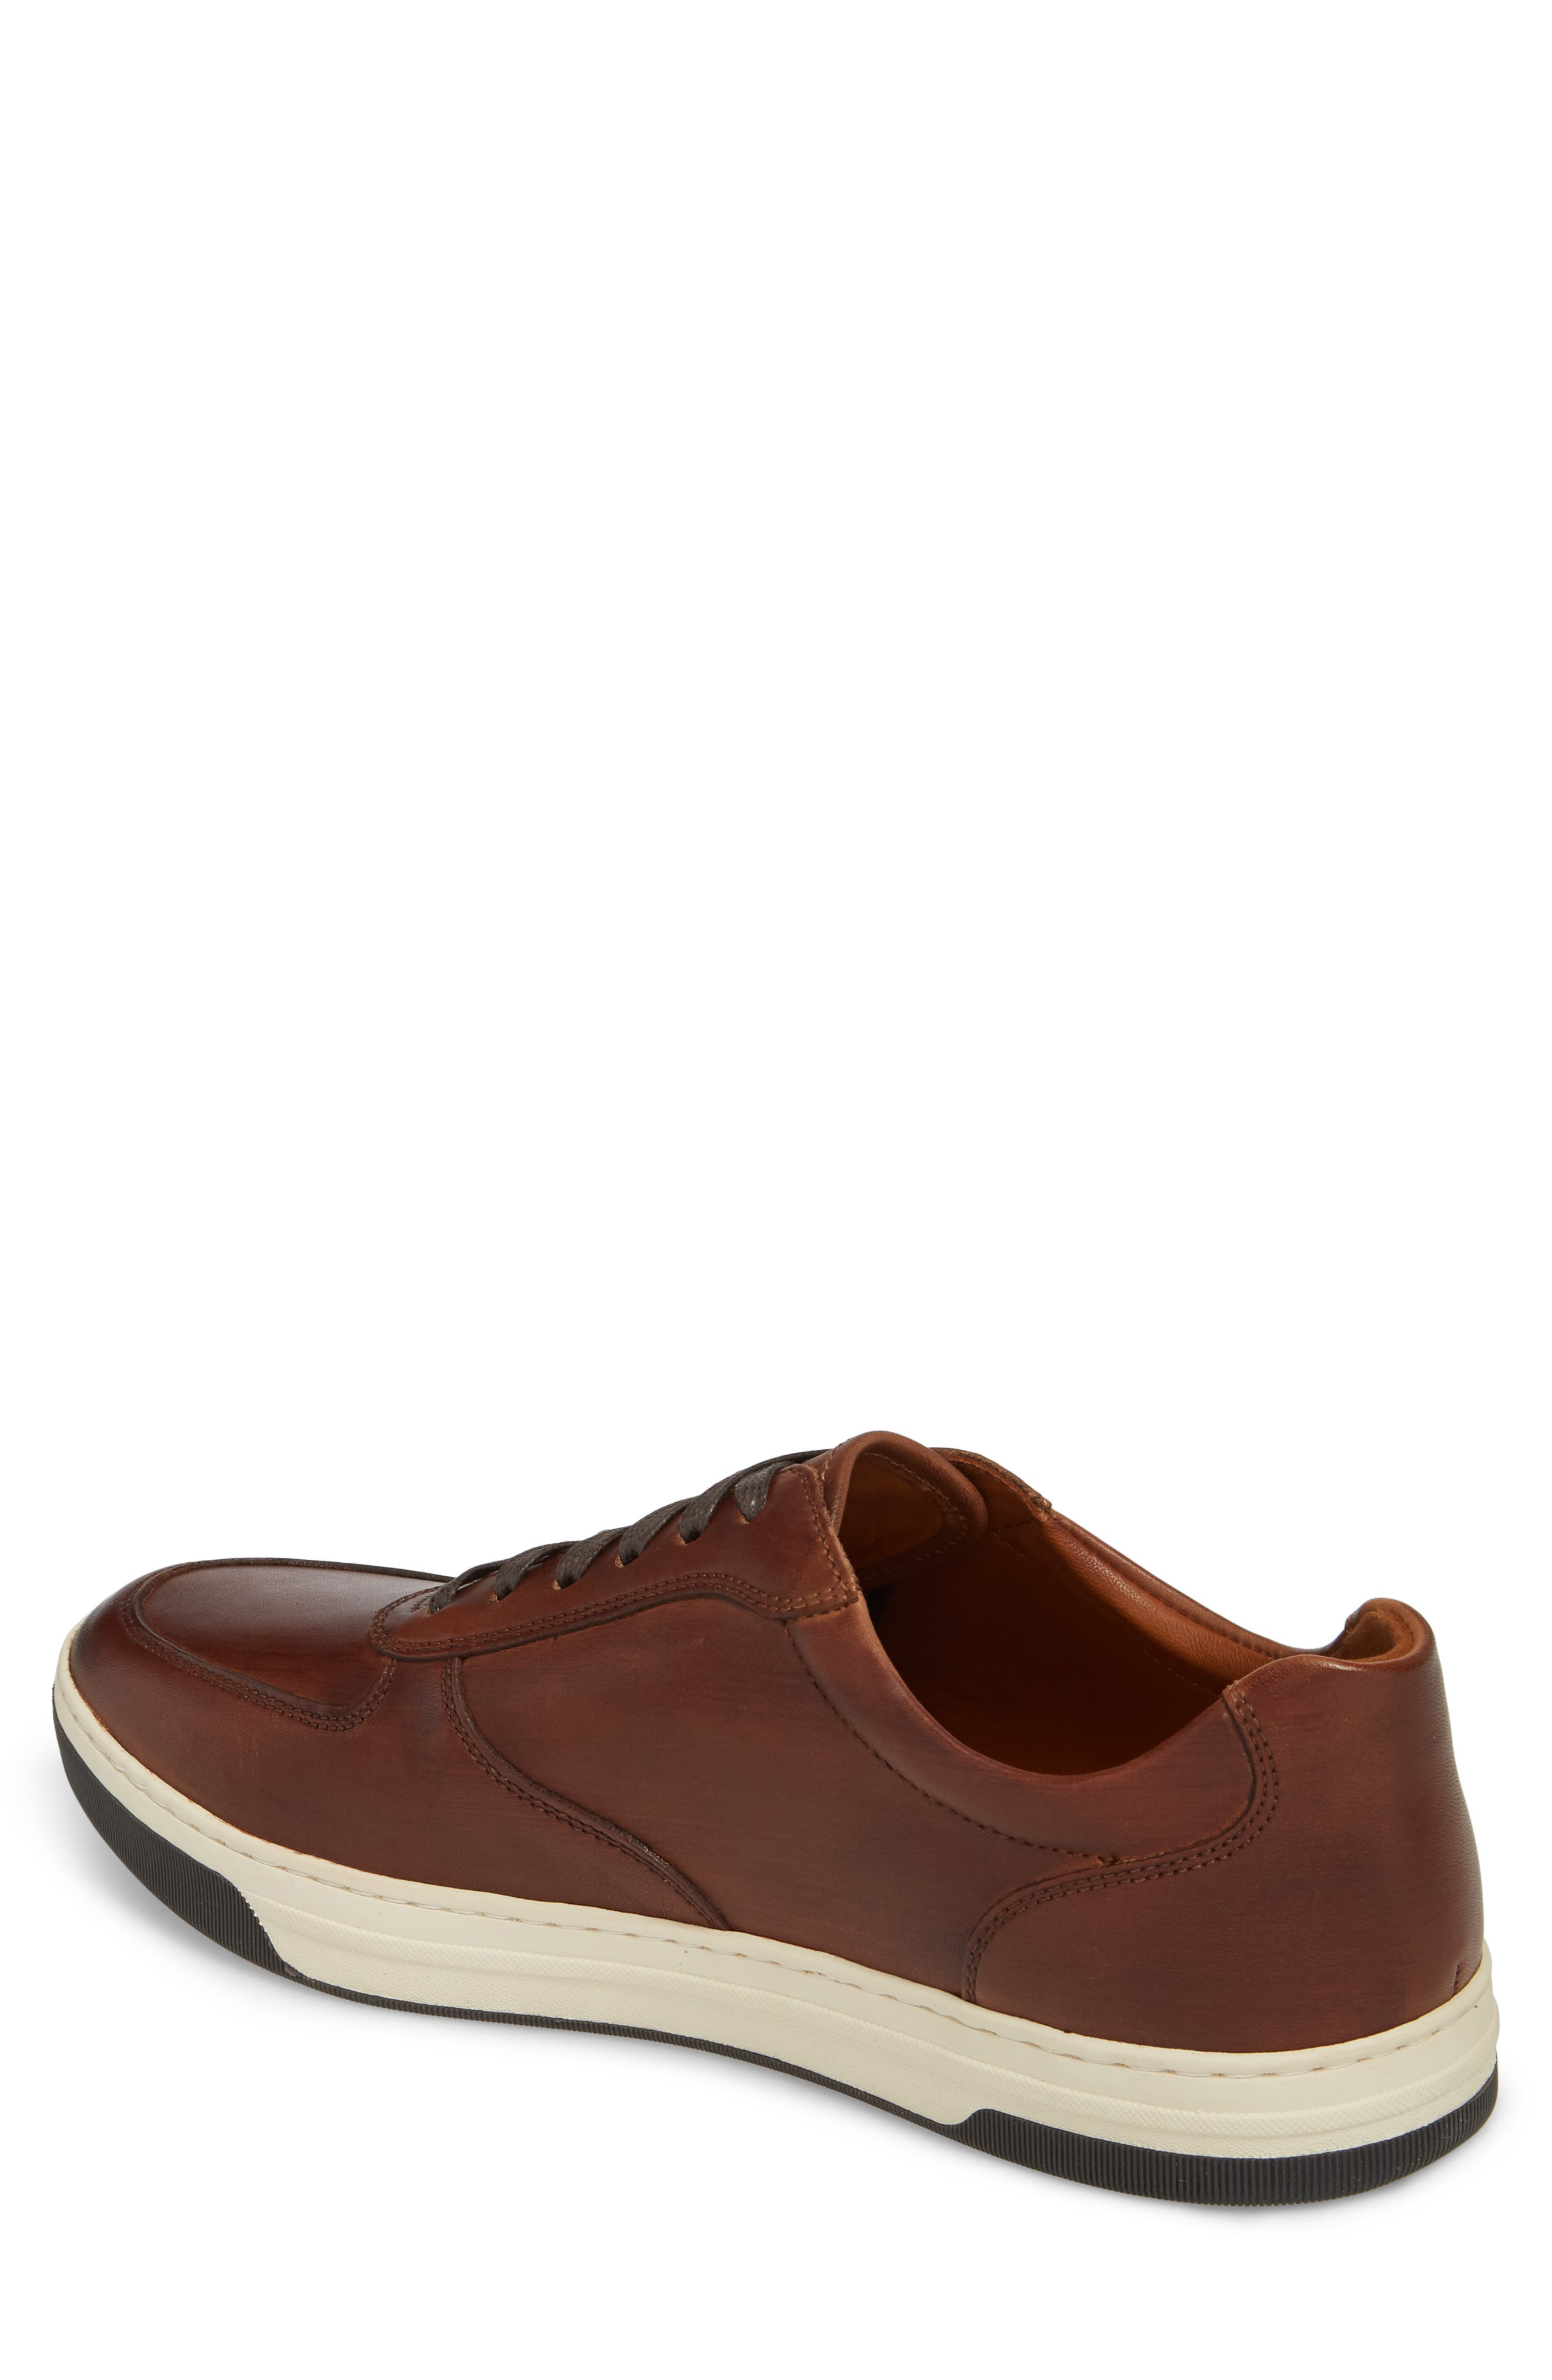 Alternate Image 2  - Johnston & Murphy Fenton Low Top Sneaker (Men)